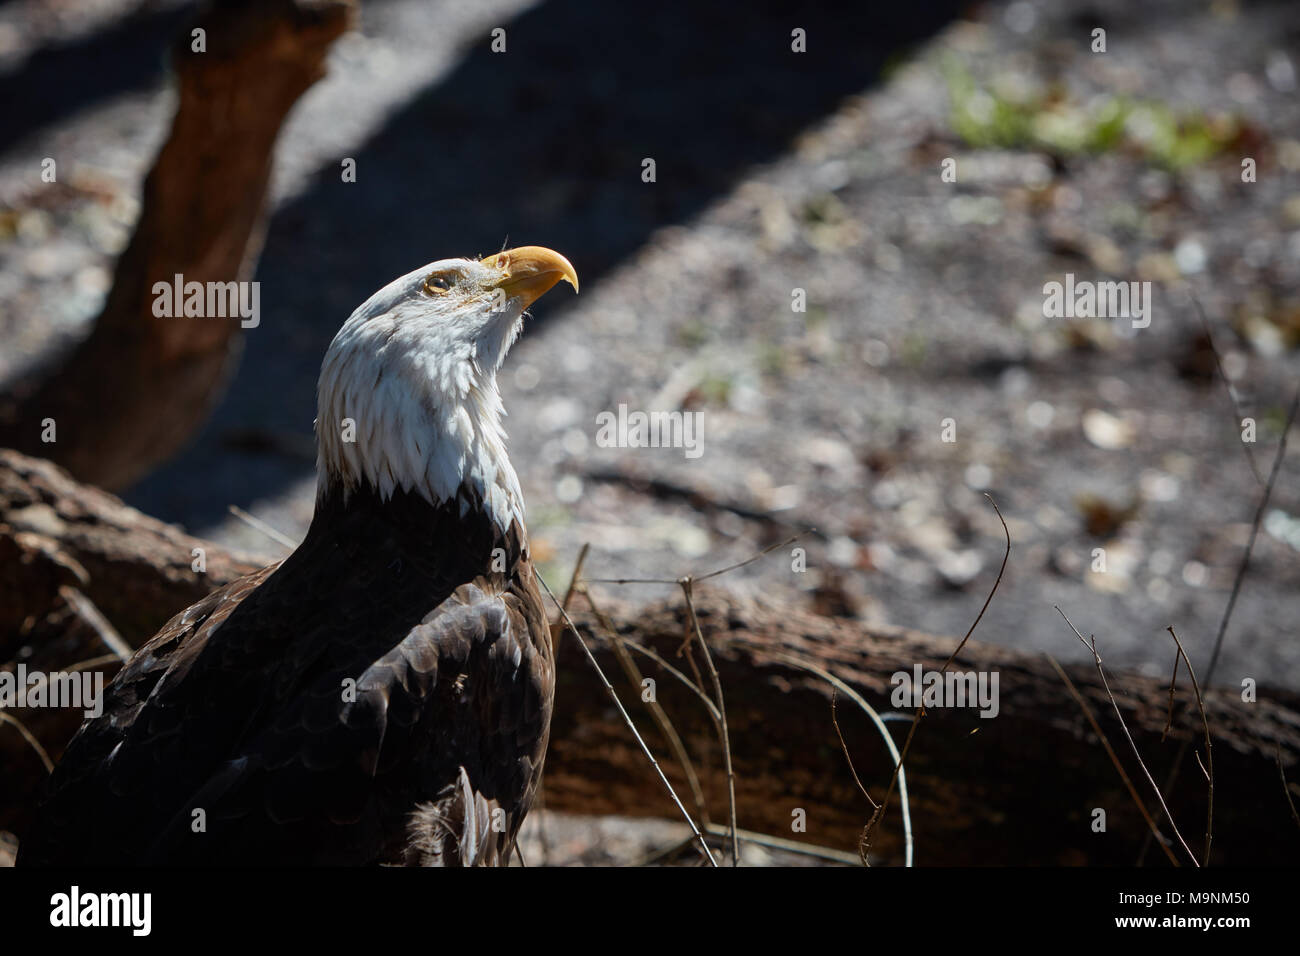 Bald Eagle with head cocked looking upwards at something - Stock Image